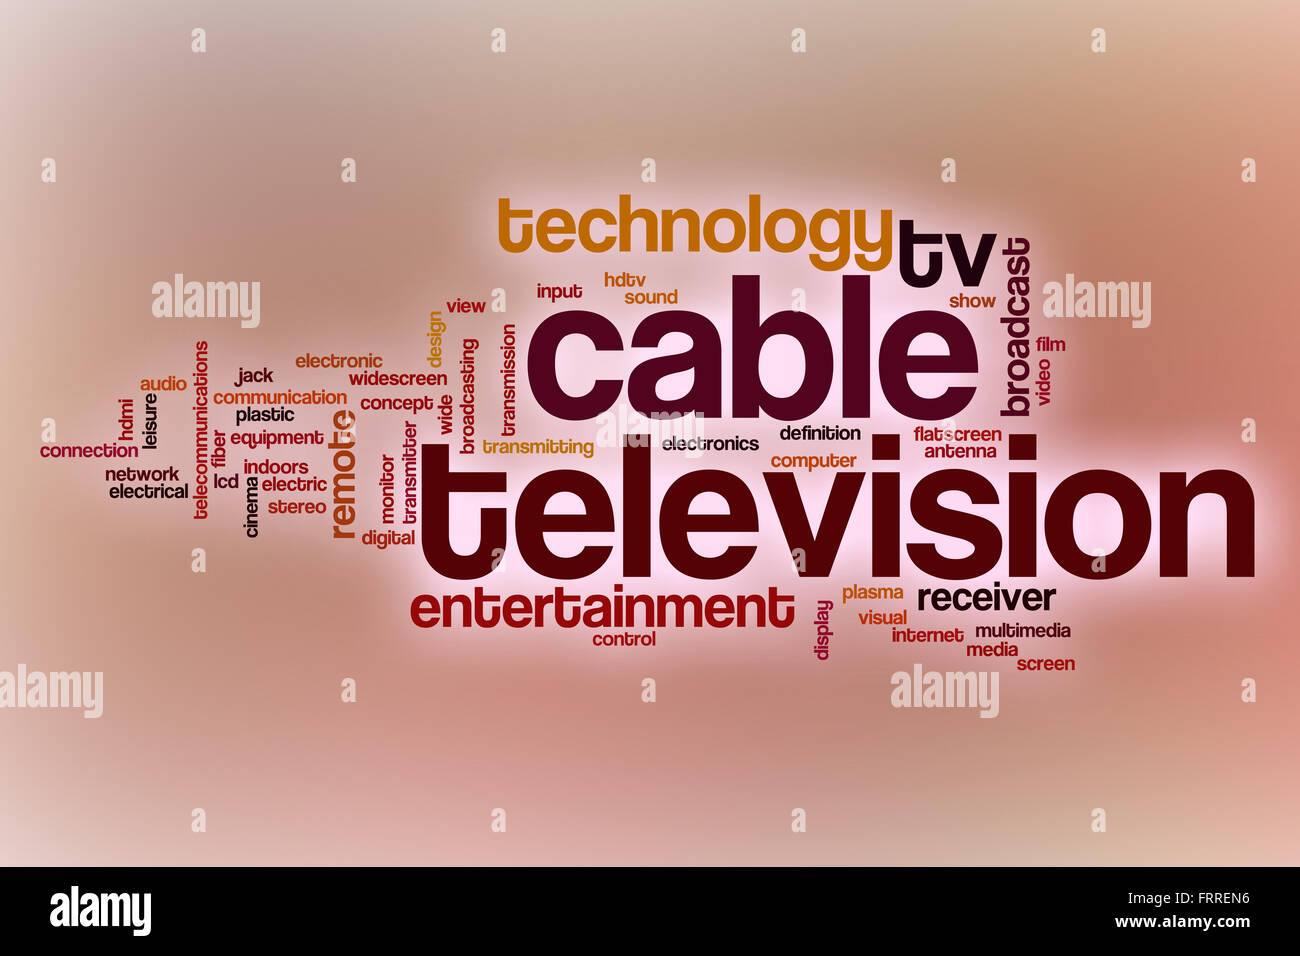 Cable television word cloud concept with abstract background - Stock Image